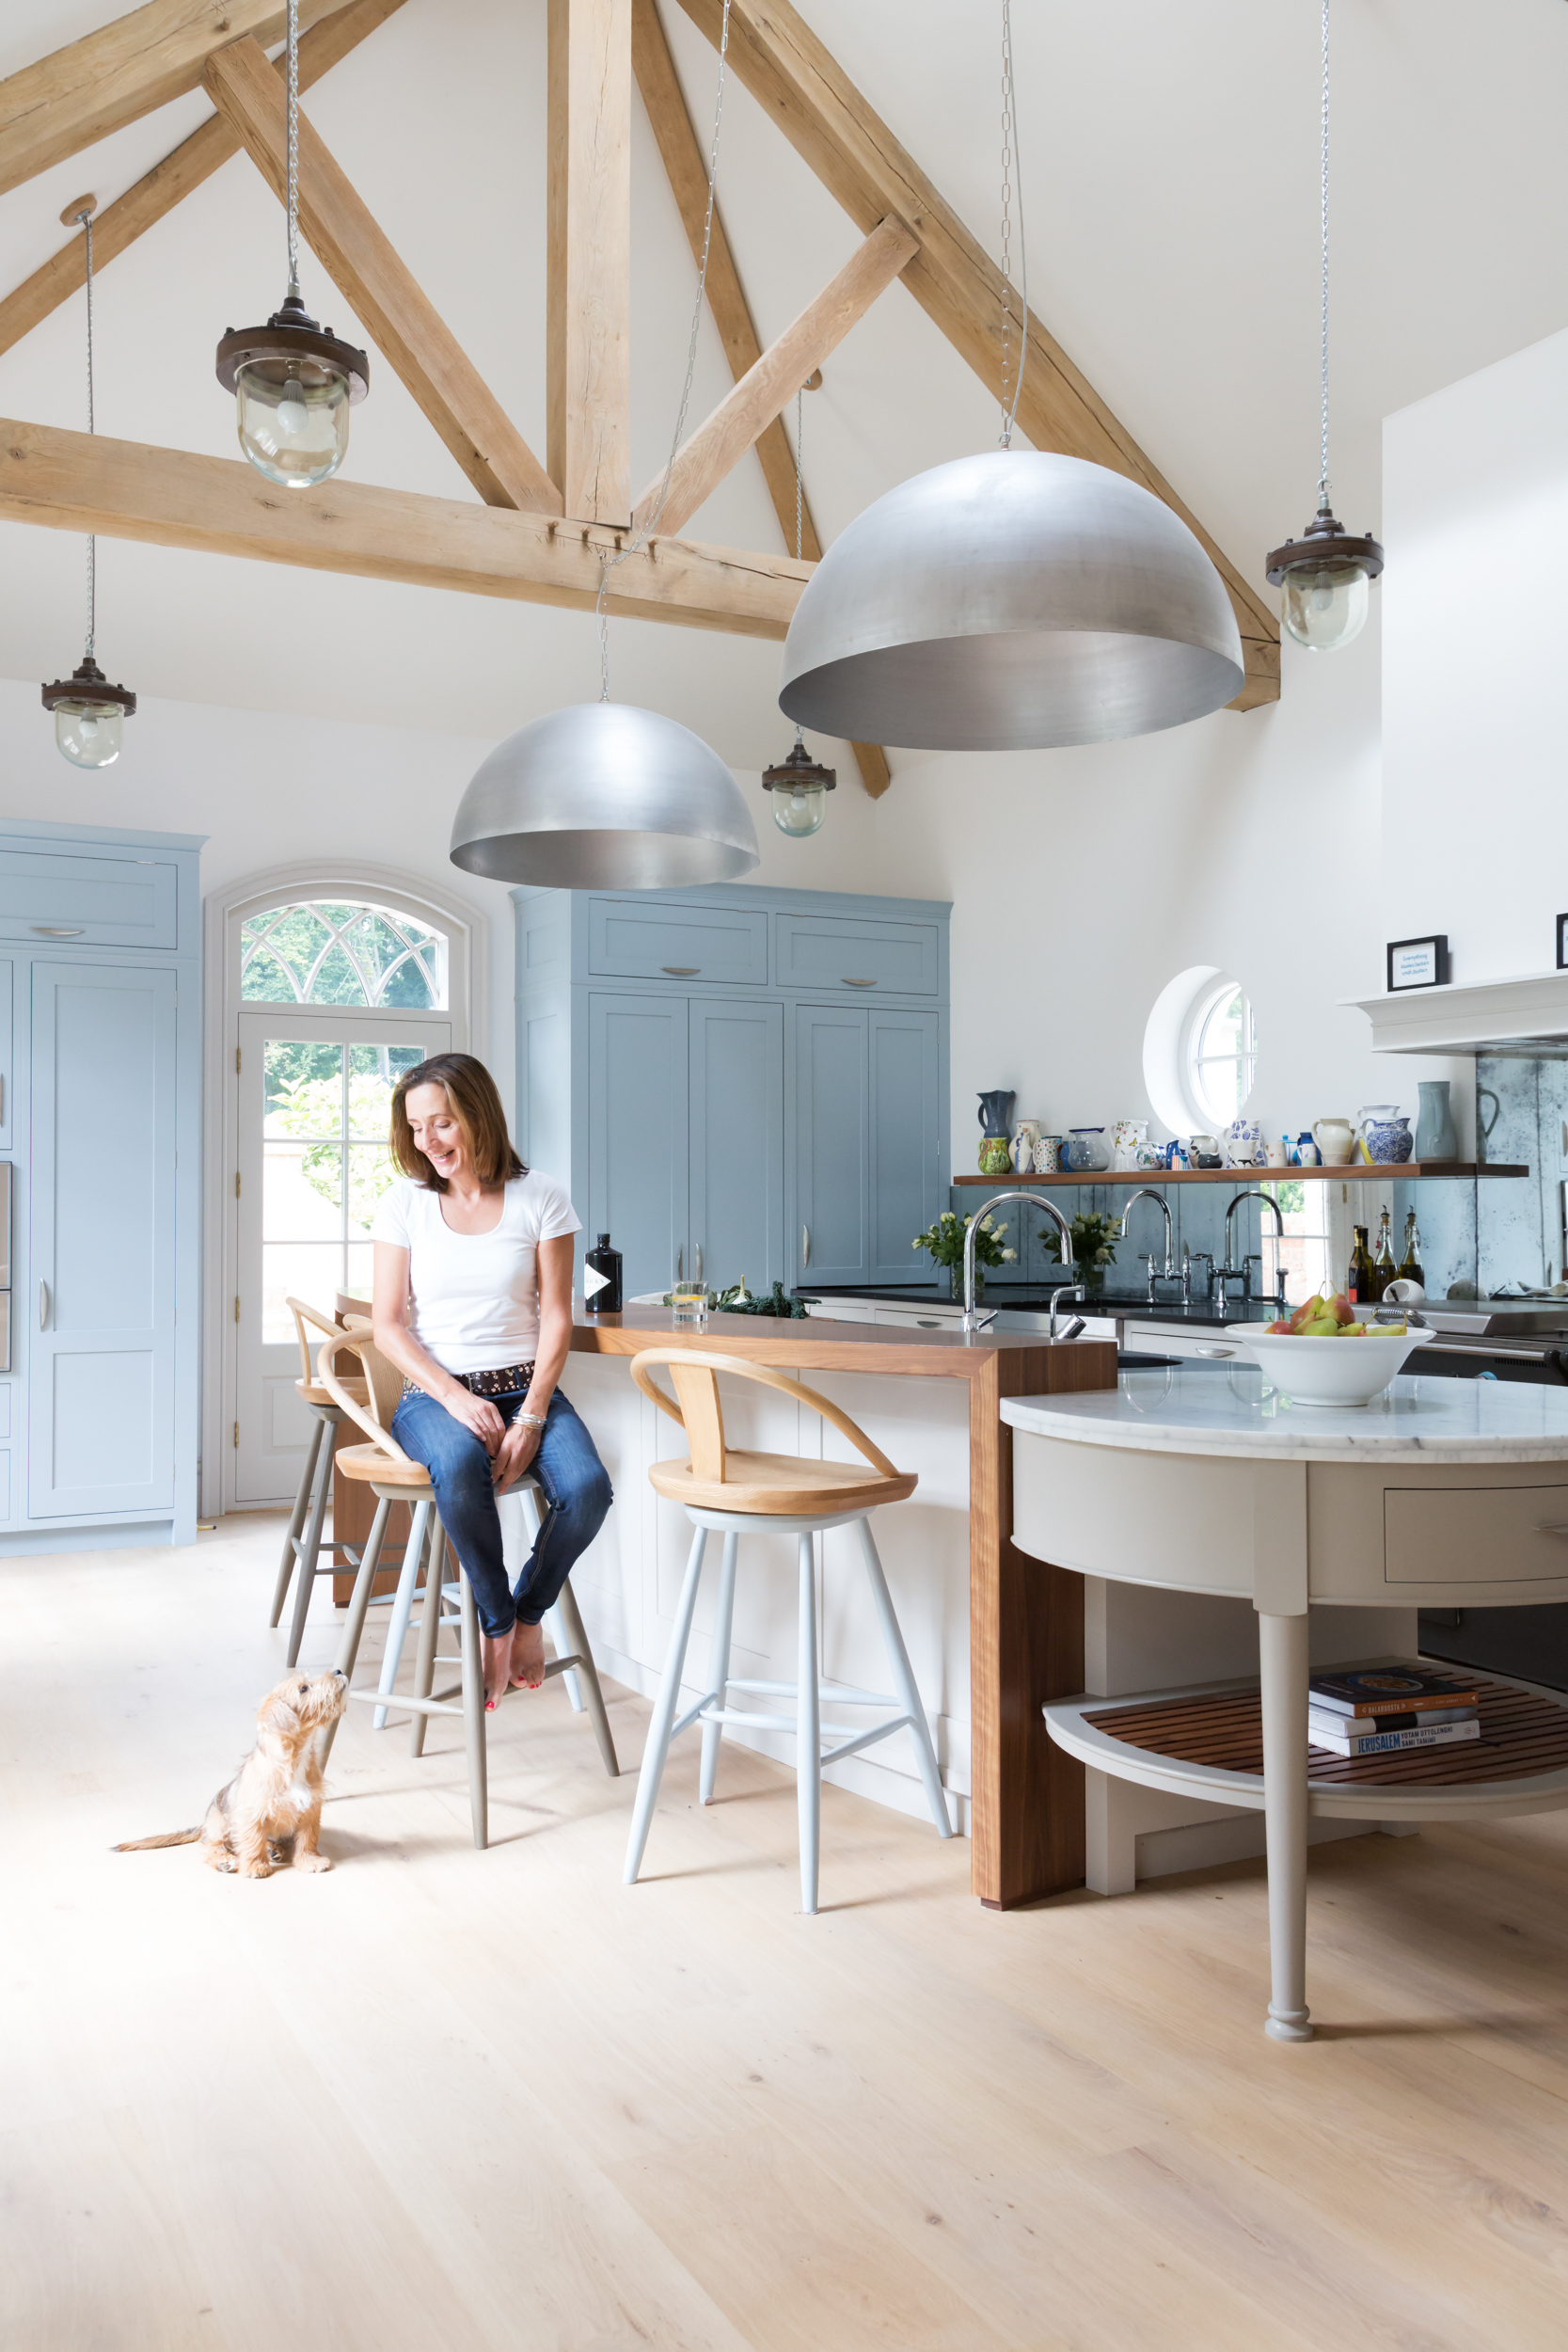 Paul Craig Interior Photographer, People Photography, Lady and dog in Kitchen